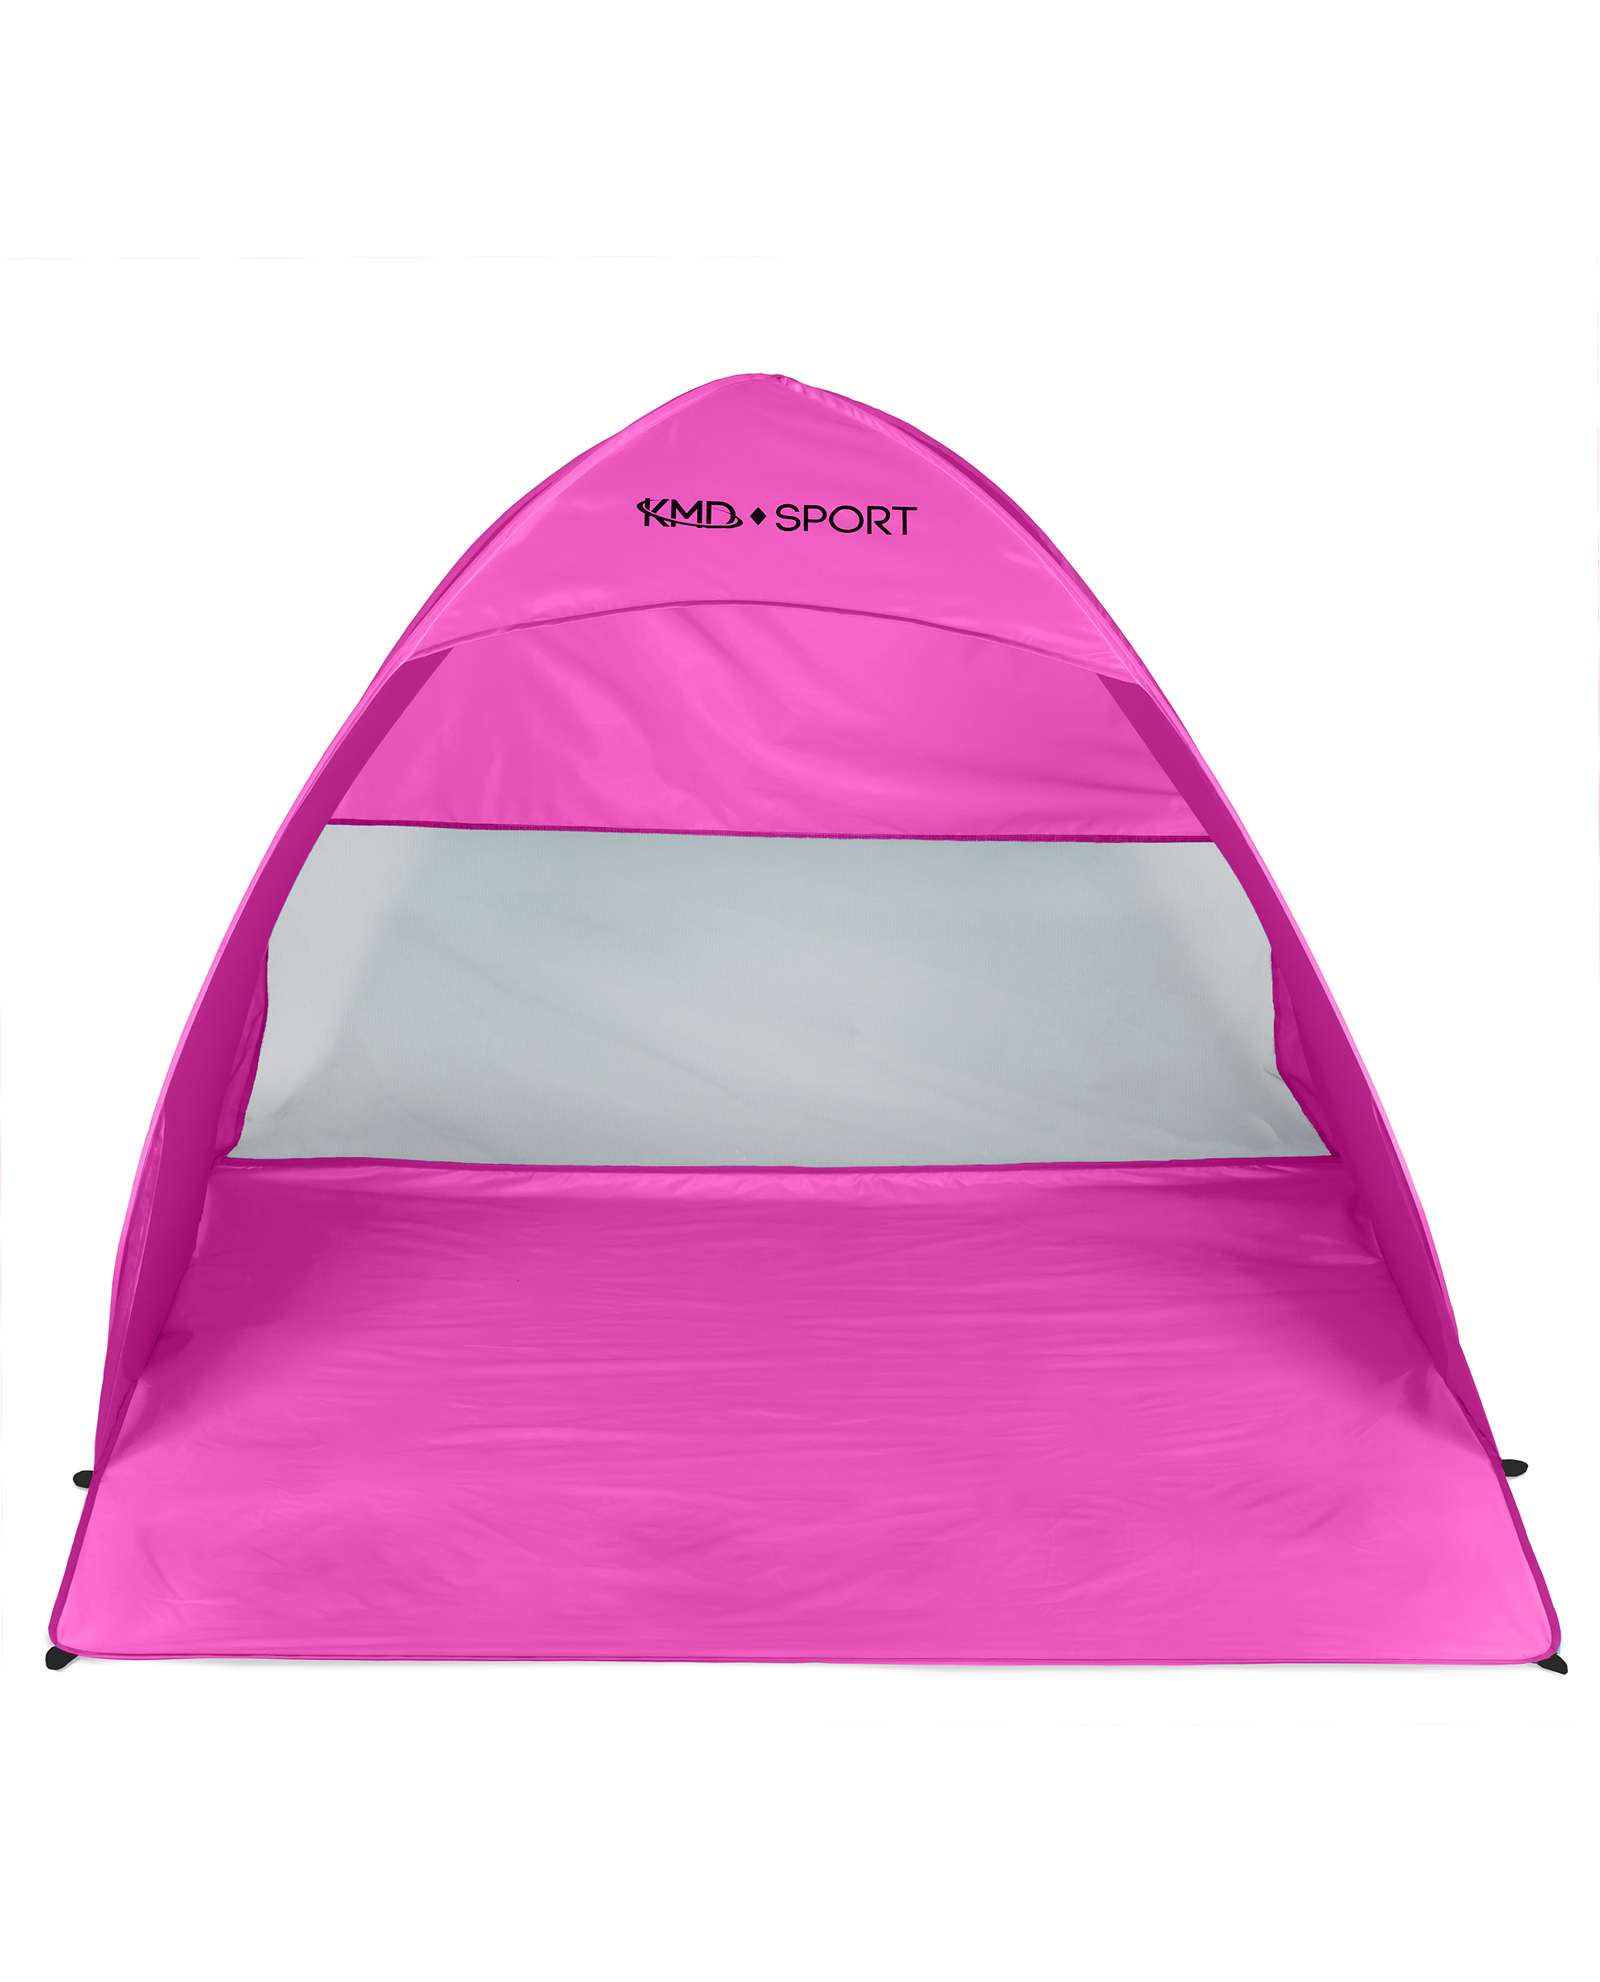 Beach Pop Up Tent u2013 Lightweight Portable Cabana for Privacy u0026 Shade u2013 Great for Kids Adults Family u2013 Quick Set Up Provides Shelter from the Sun ...  sc 1 st  KMD Direct : pop up tent sports direct - memphite.com